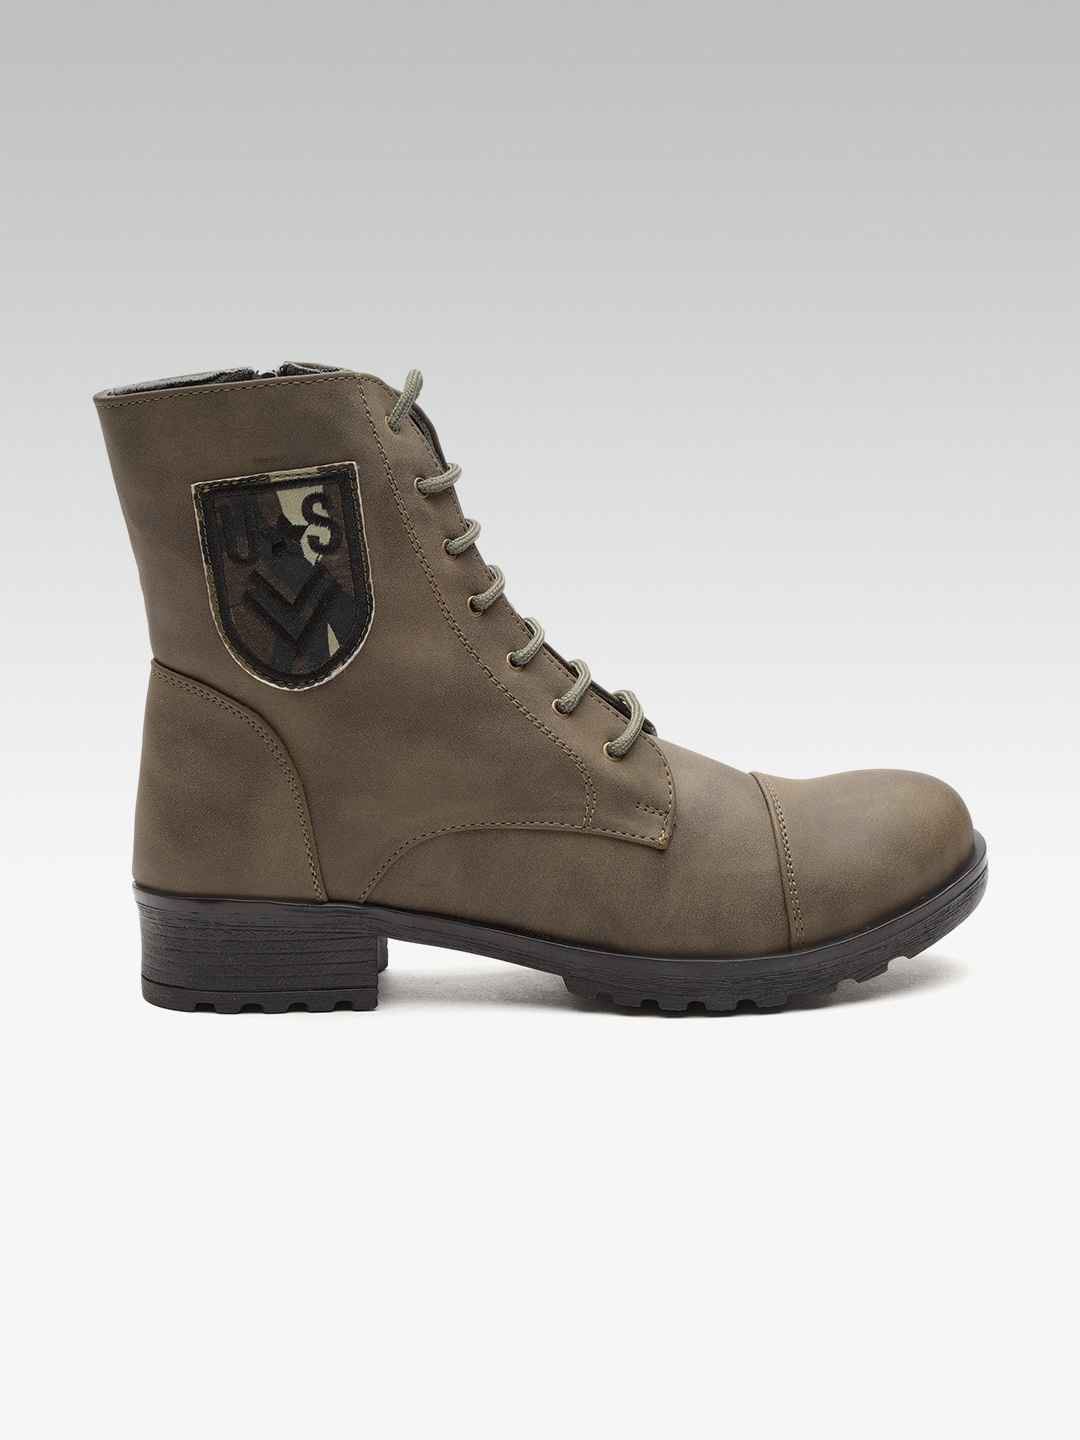 718f6b10968a19 Womens Boots - Buy Boots for Women Online in India